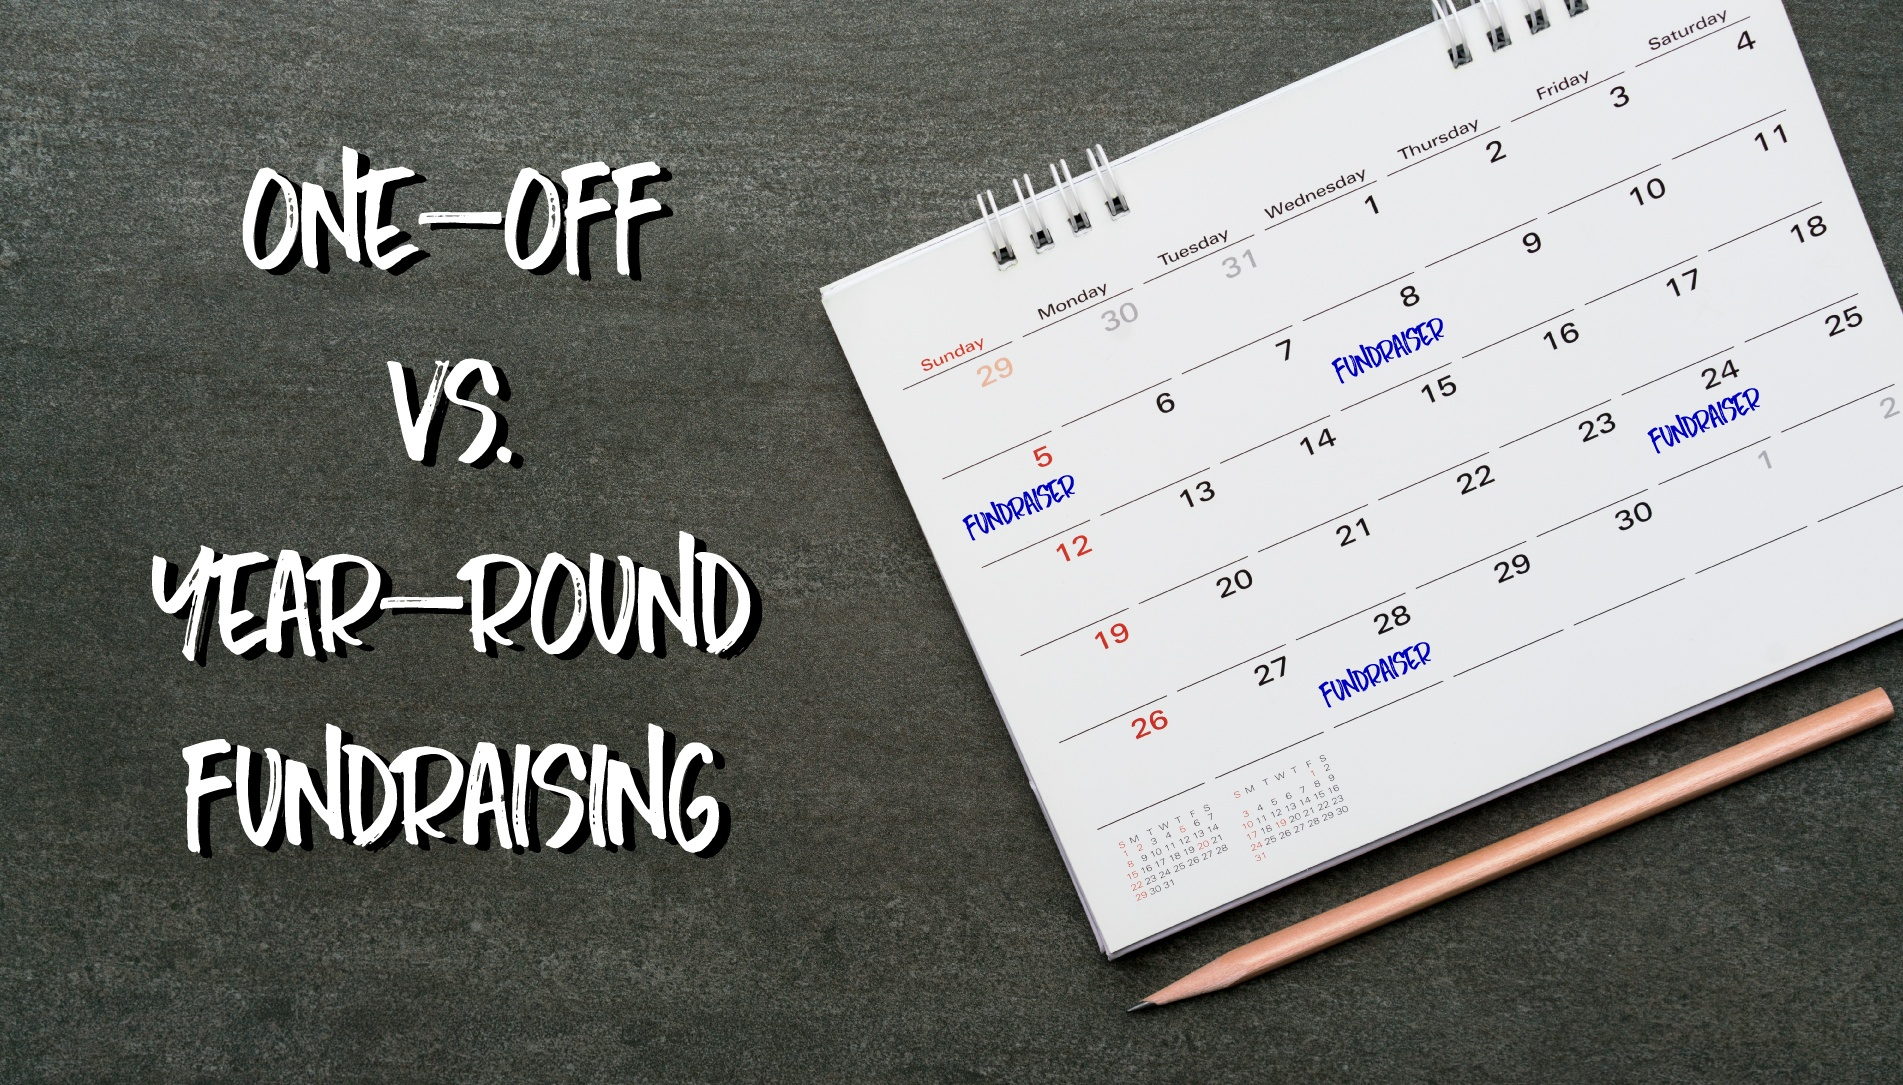 one-off vs. year-round fundraisers